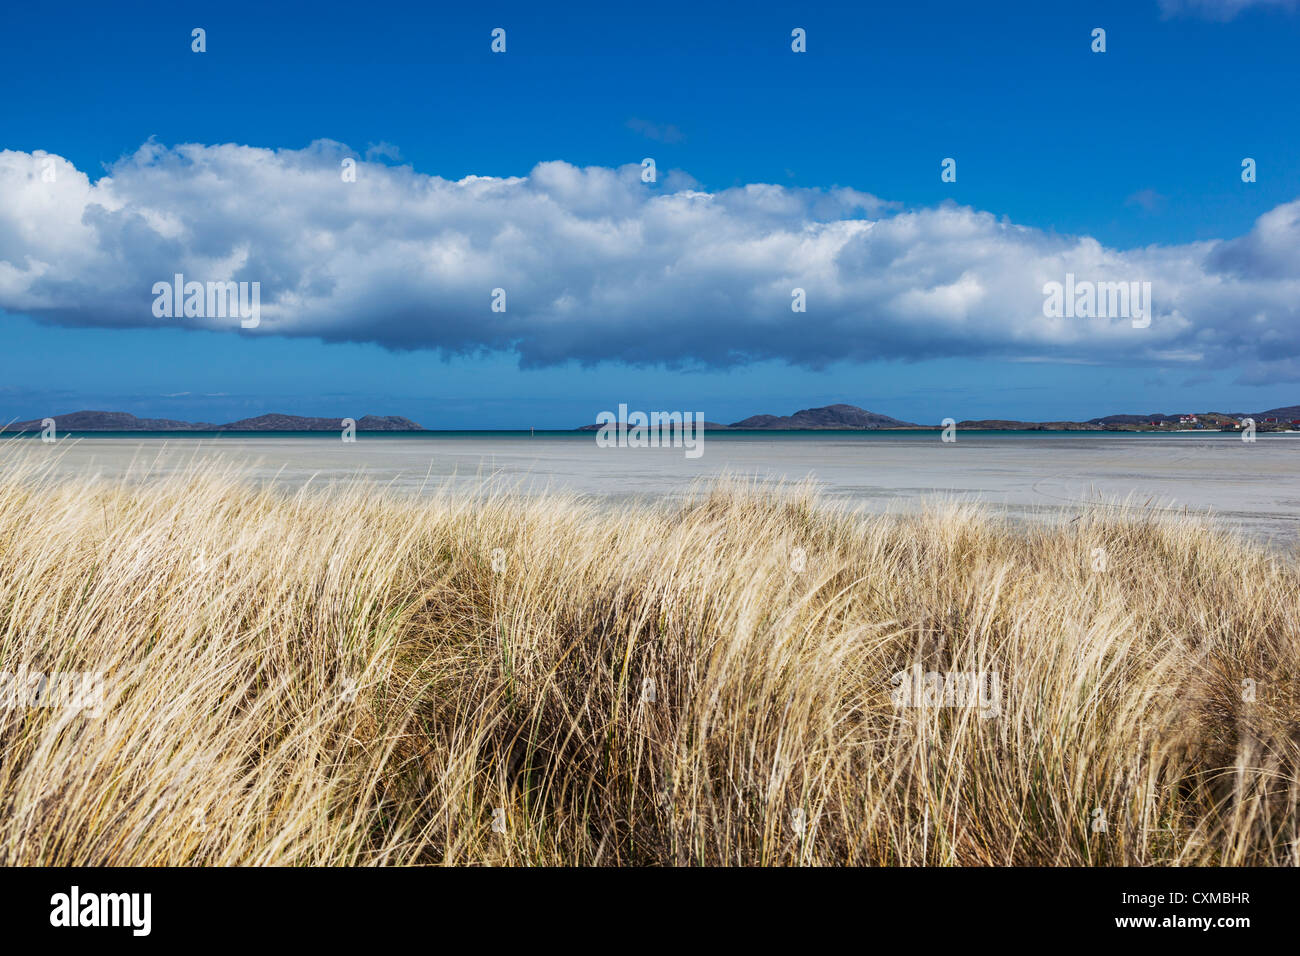 View of Traigh Mhor from behind maram grass covered sand dunes, Barra, Outer Hebrides, Scotland, UK - Stock Image